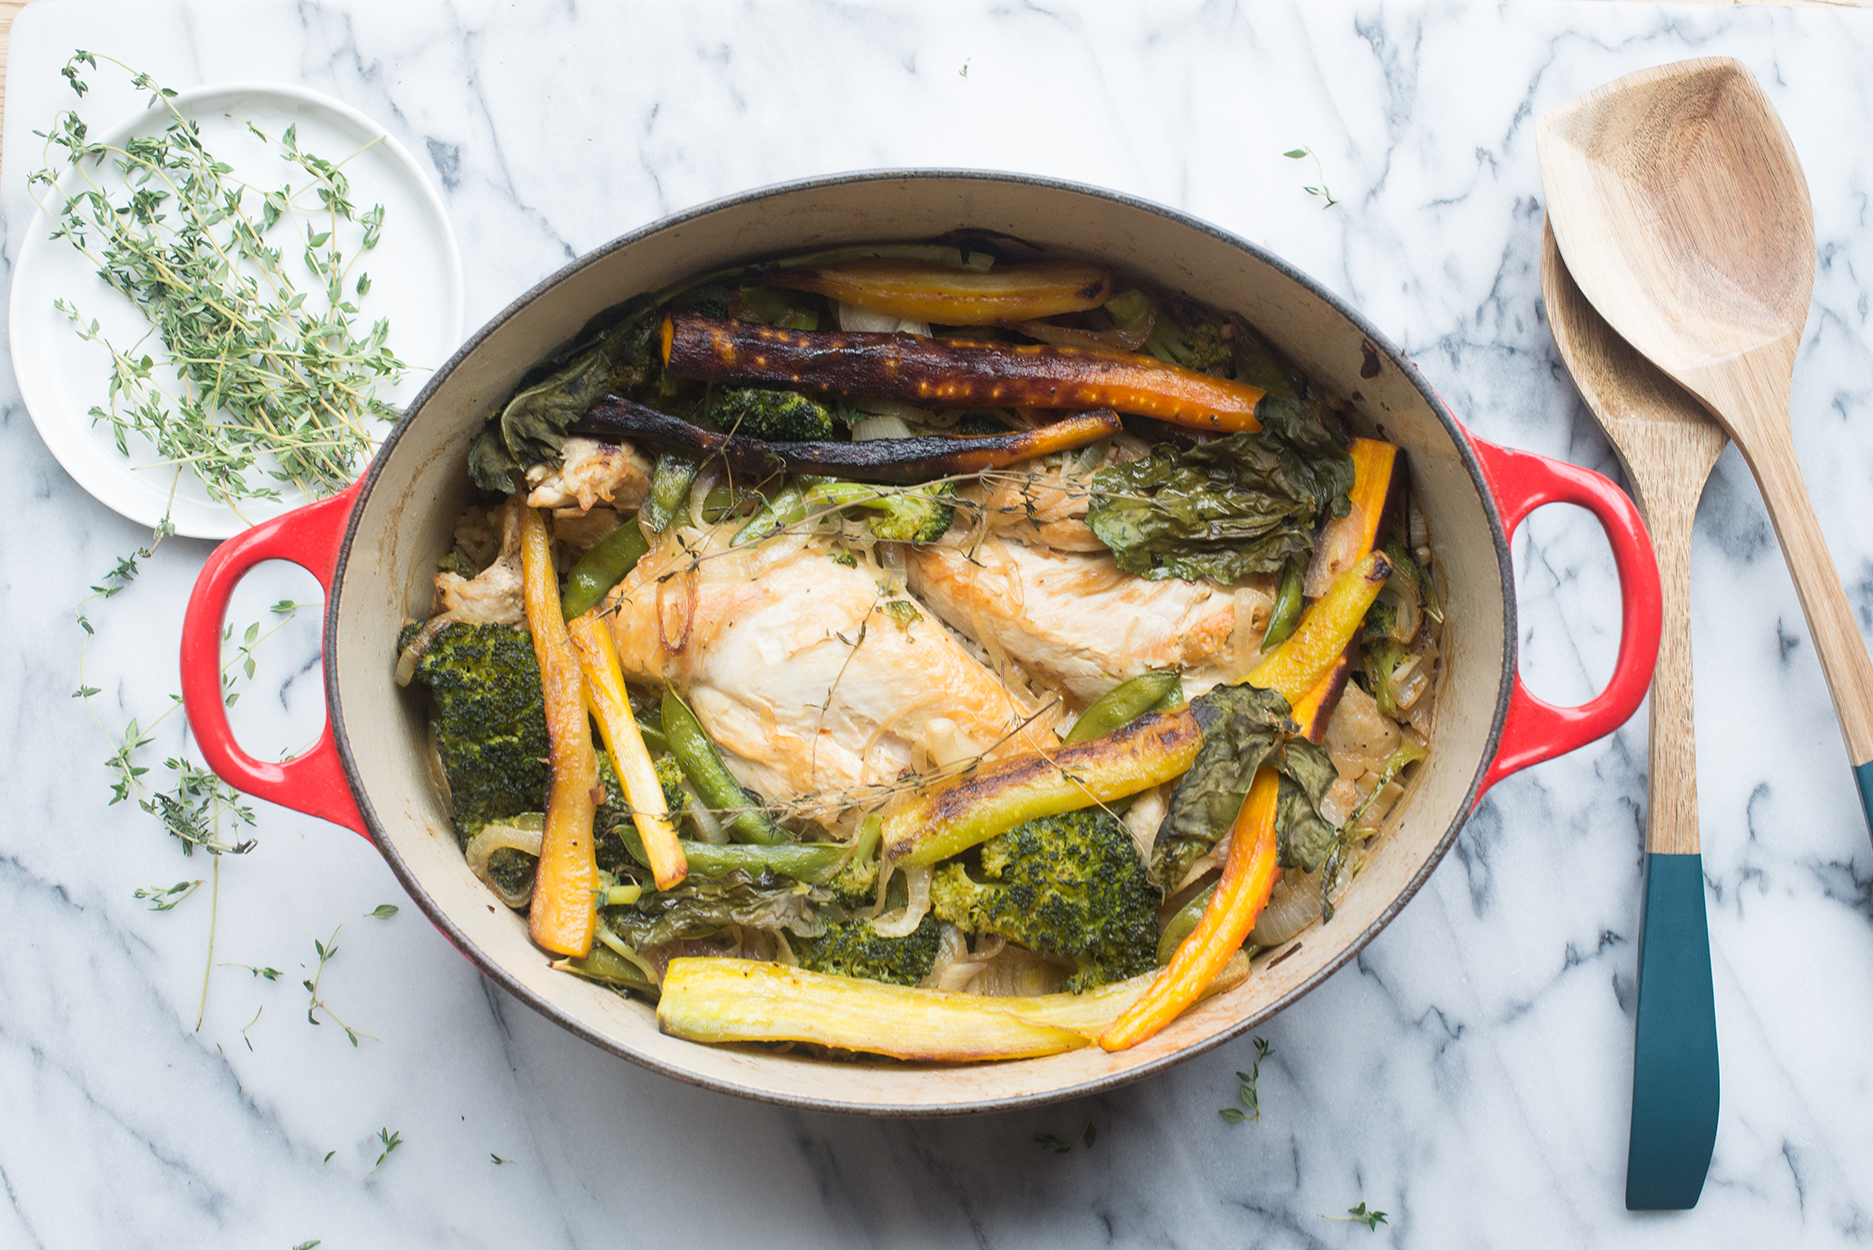 chicken and vegetables in a red dutch oven, with wooden spoons and a plate of thyme to the side